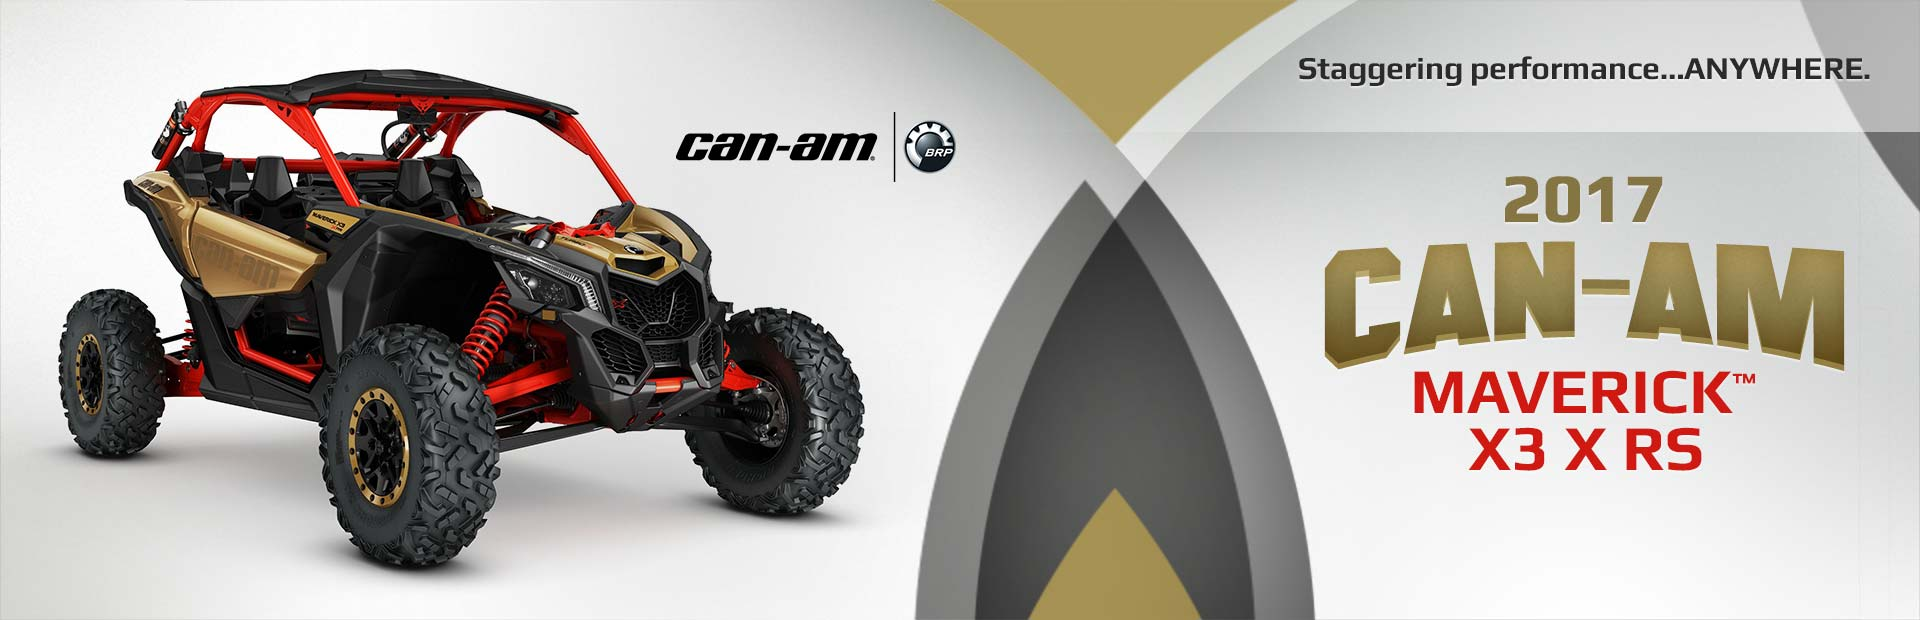 The 2017 Can-Am Maverick™ X3 X rs: Click here for details.